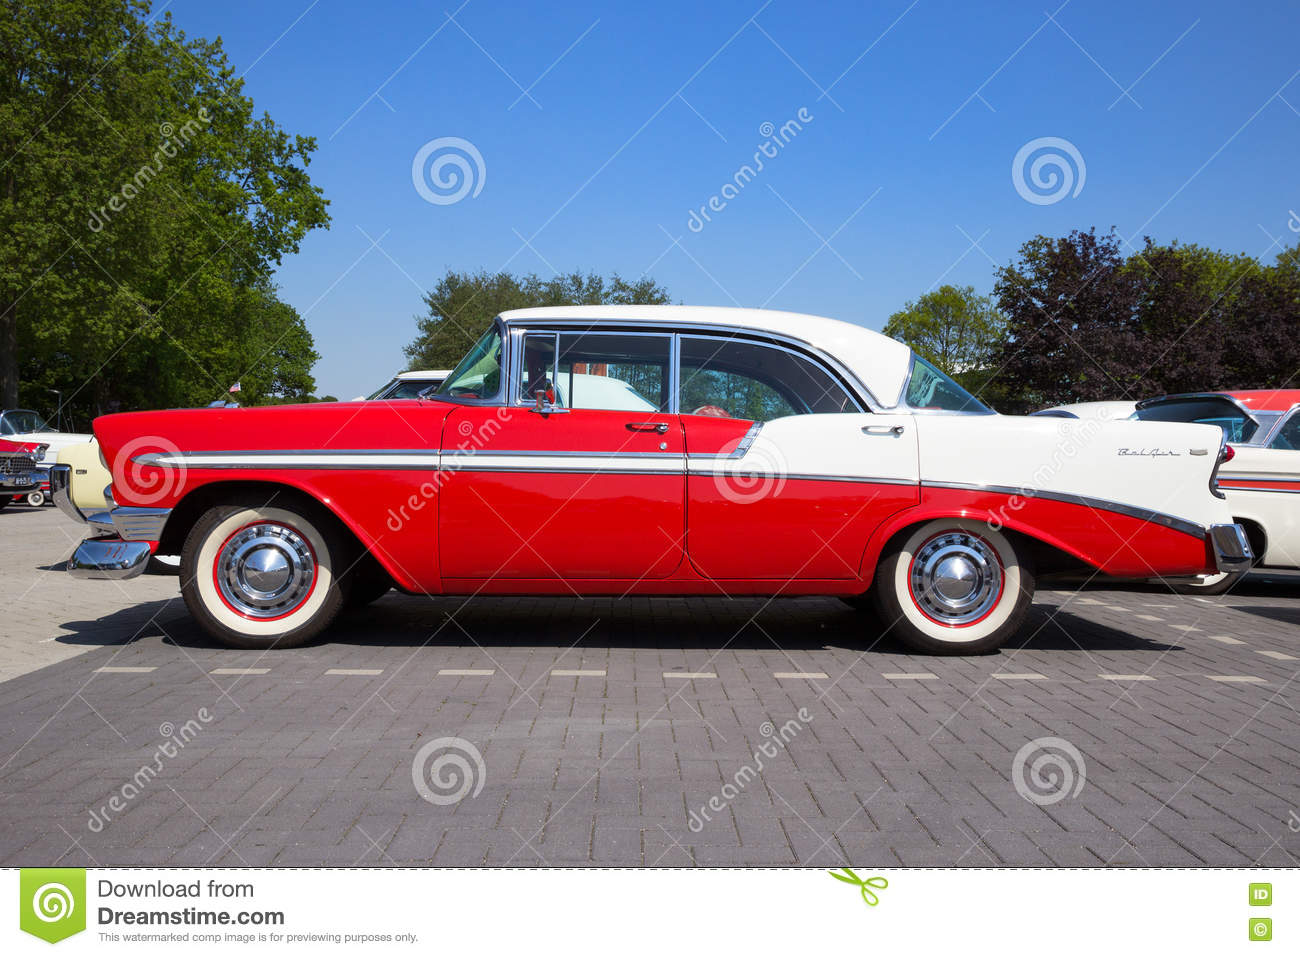 1956 chevrolet belair 4 door hardtop editorial photography for 1956 chevy 4 door